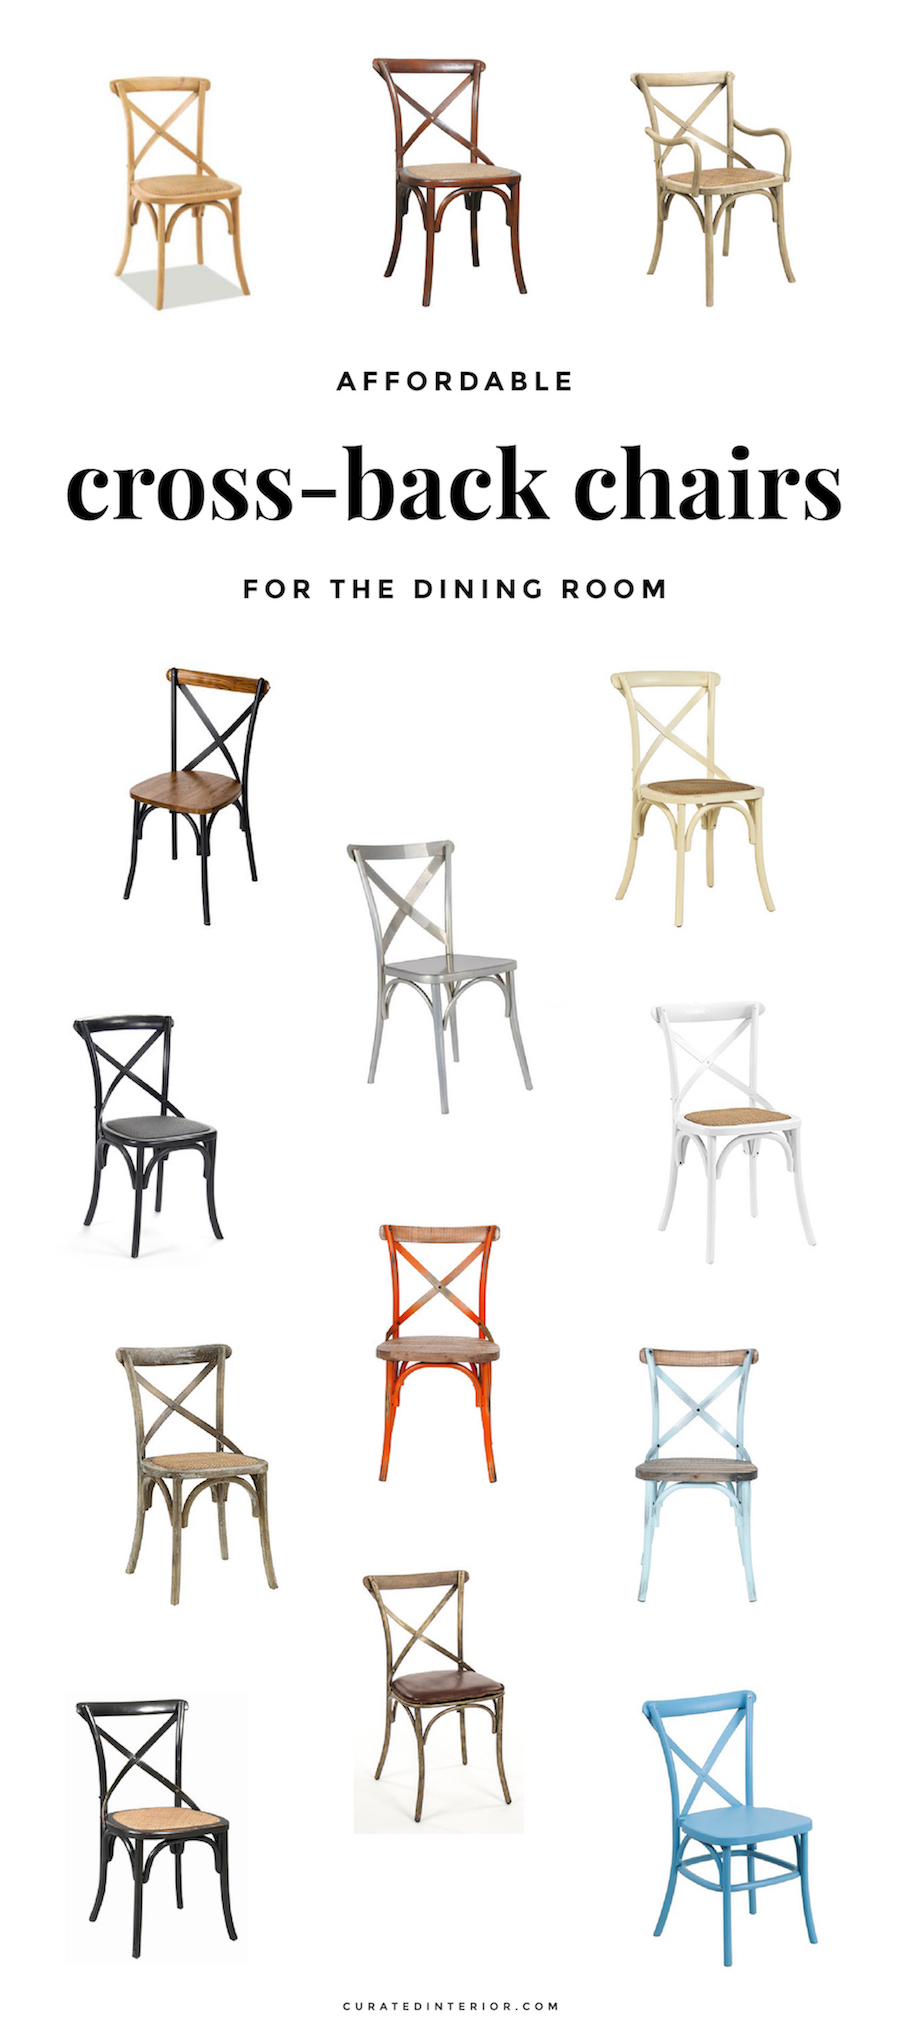 Best Cross-back Chairs for Dining Room